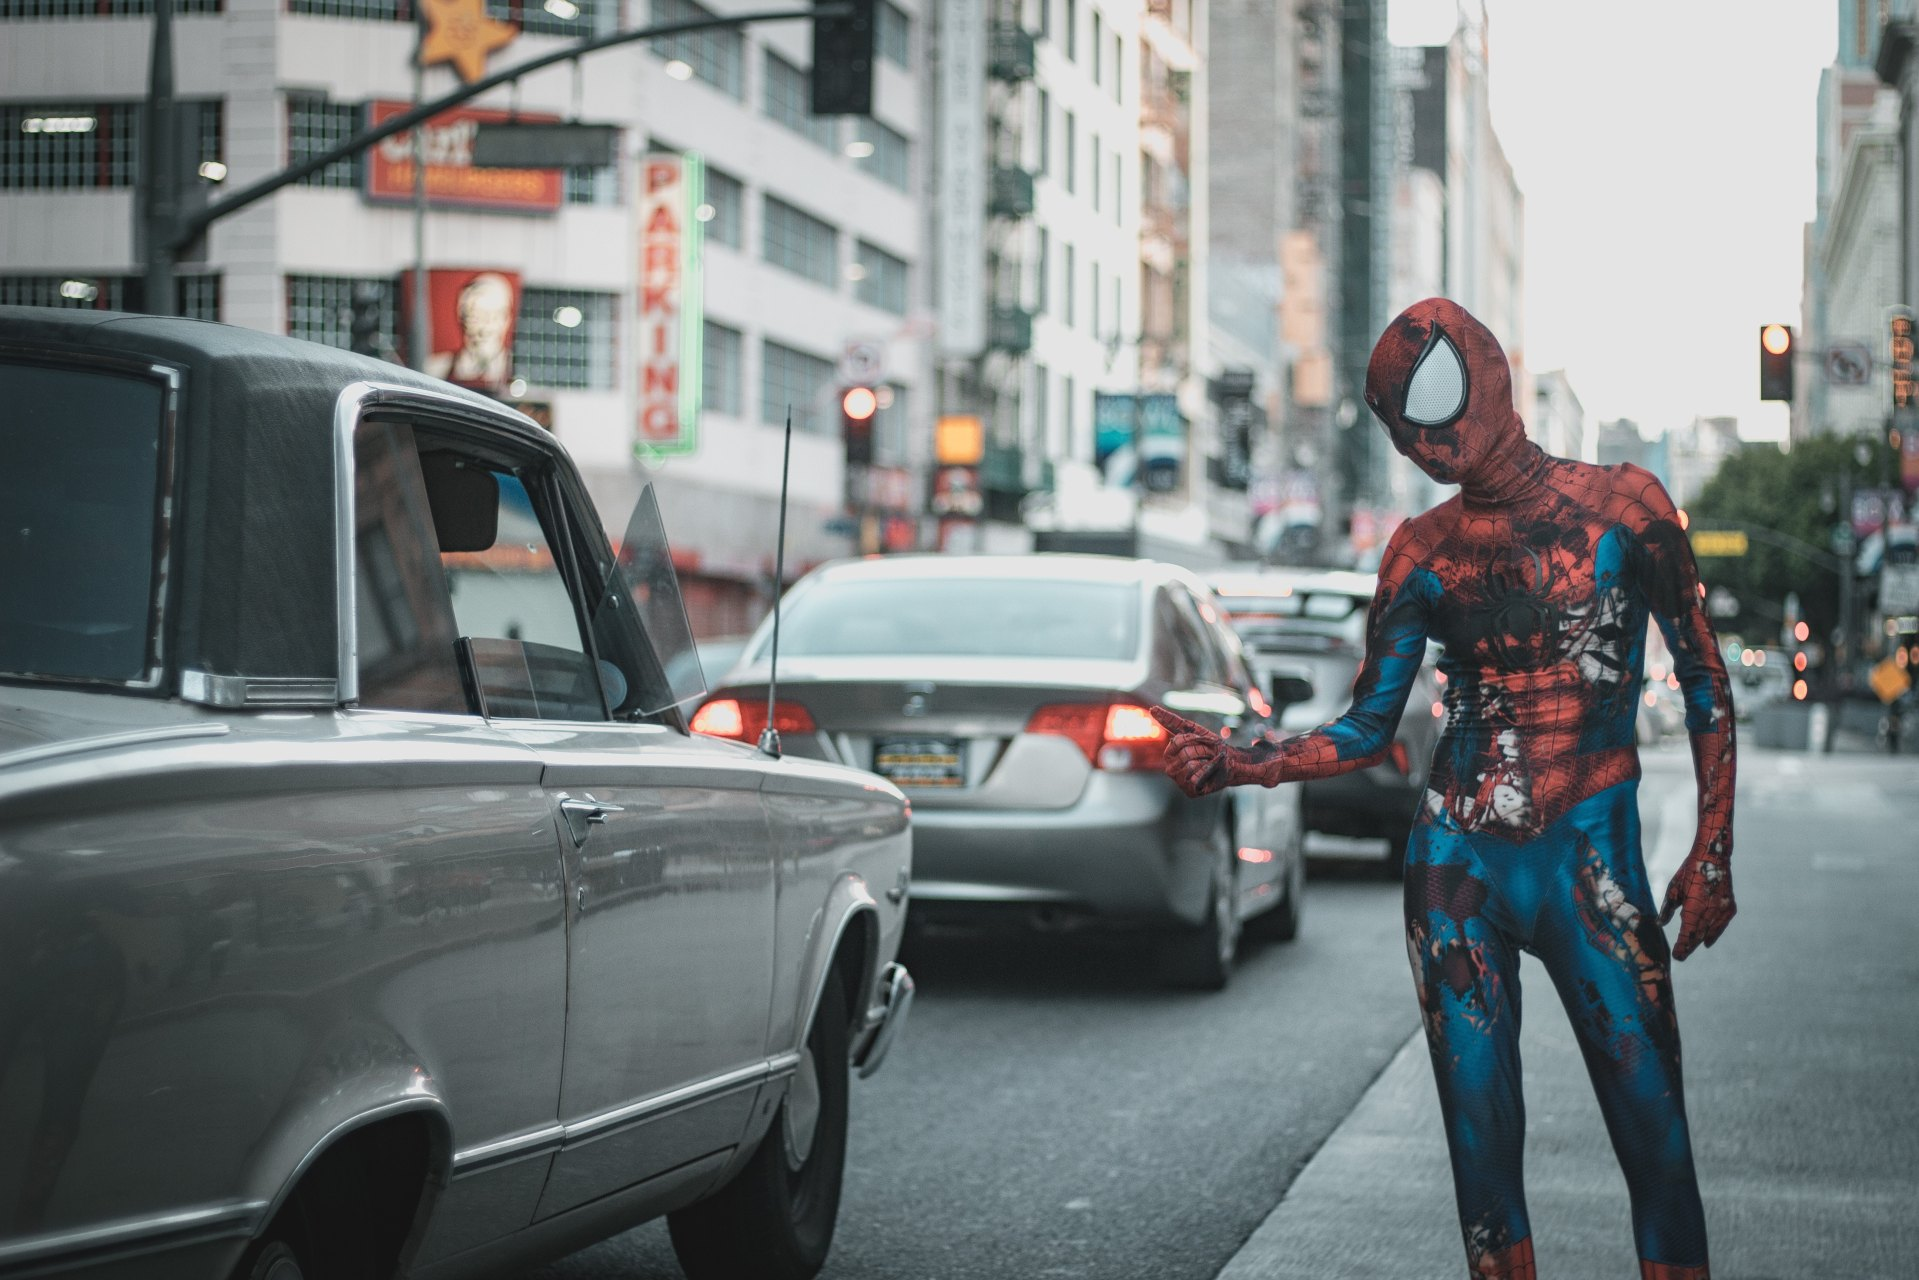 Man wearing Spiderman outfit in city